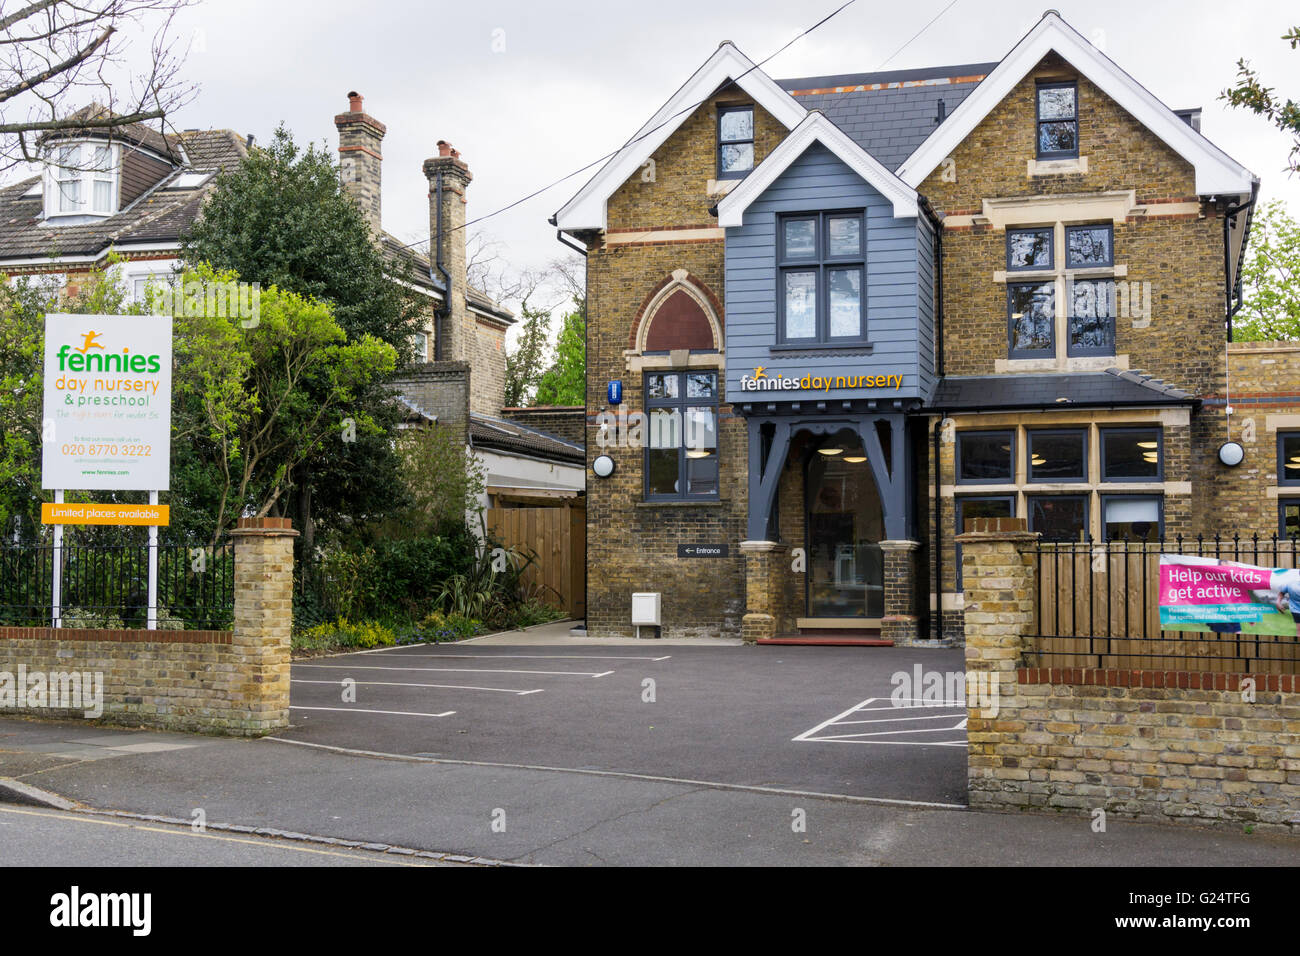 Fennies Day Nursery & Preschool in Bromley, Kent. - Stock Image